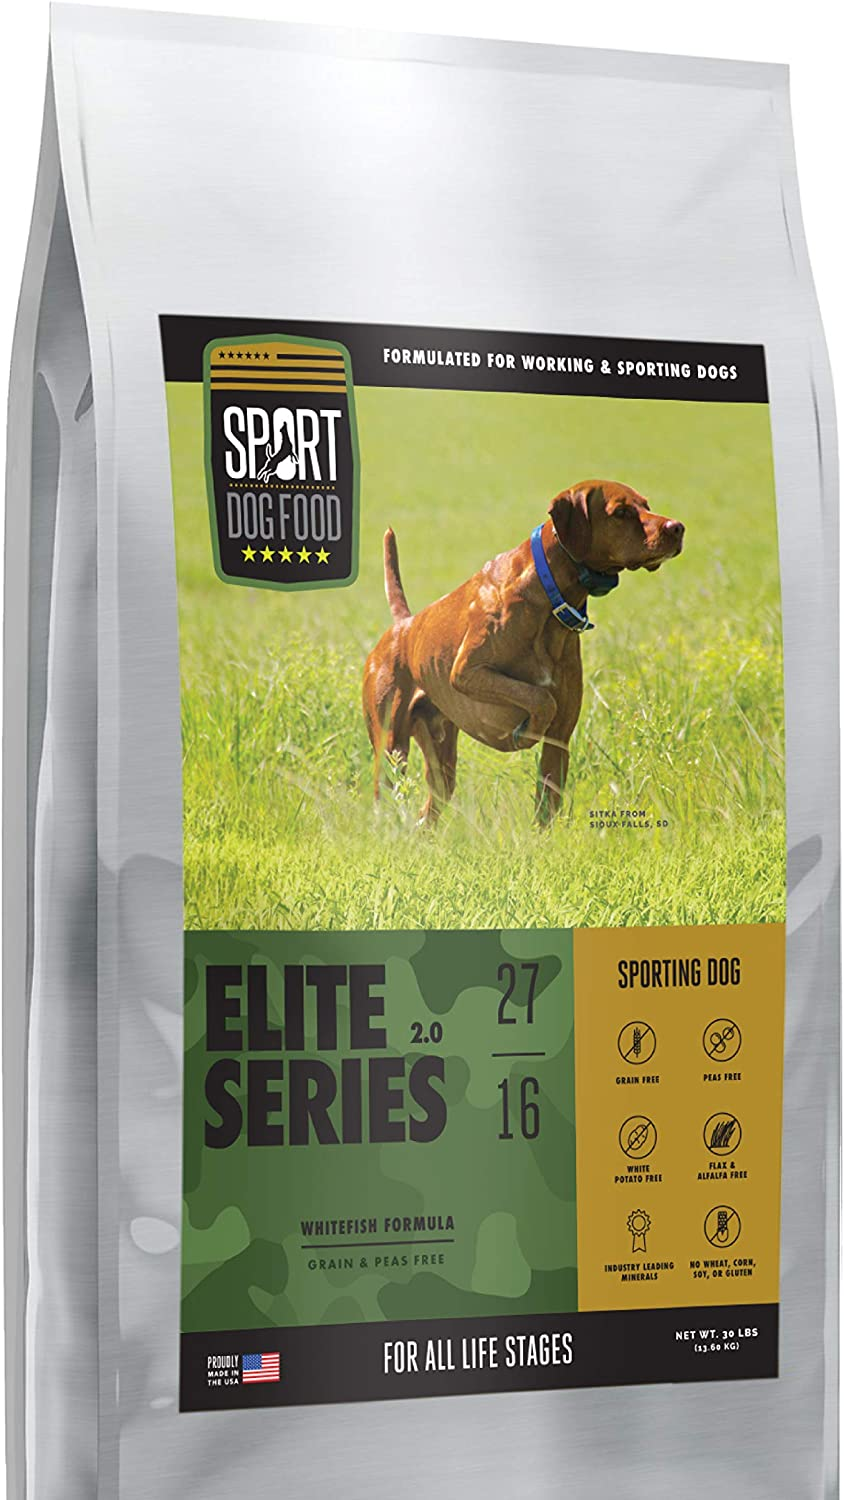 Elite Series Sporting Dog Whitefish Formula, Grains and Peas Free Dry Dog Food, 30 lb. bag